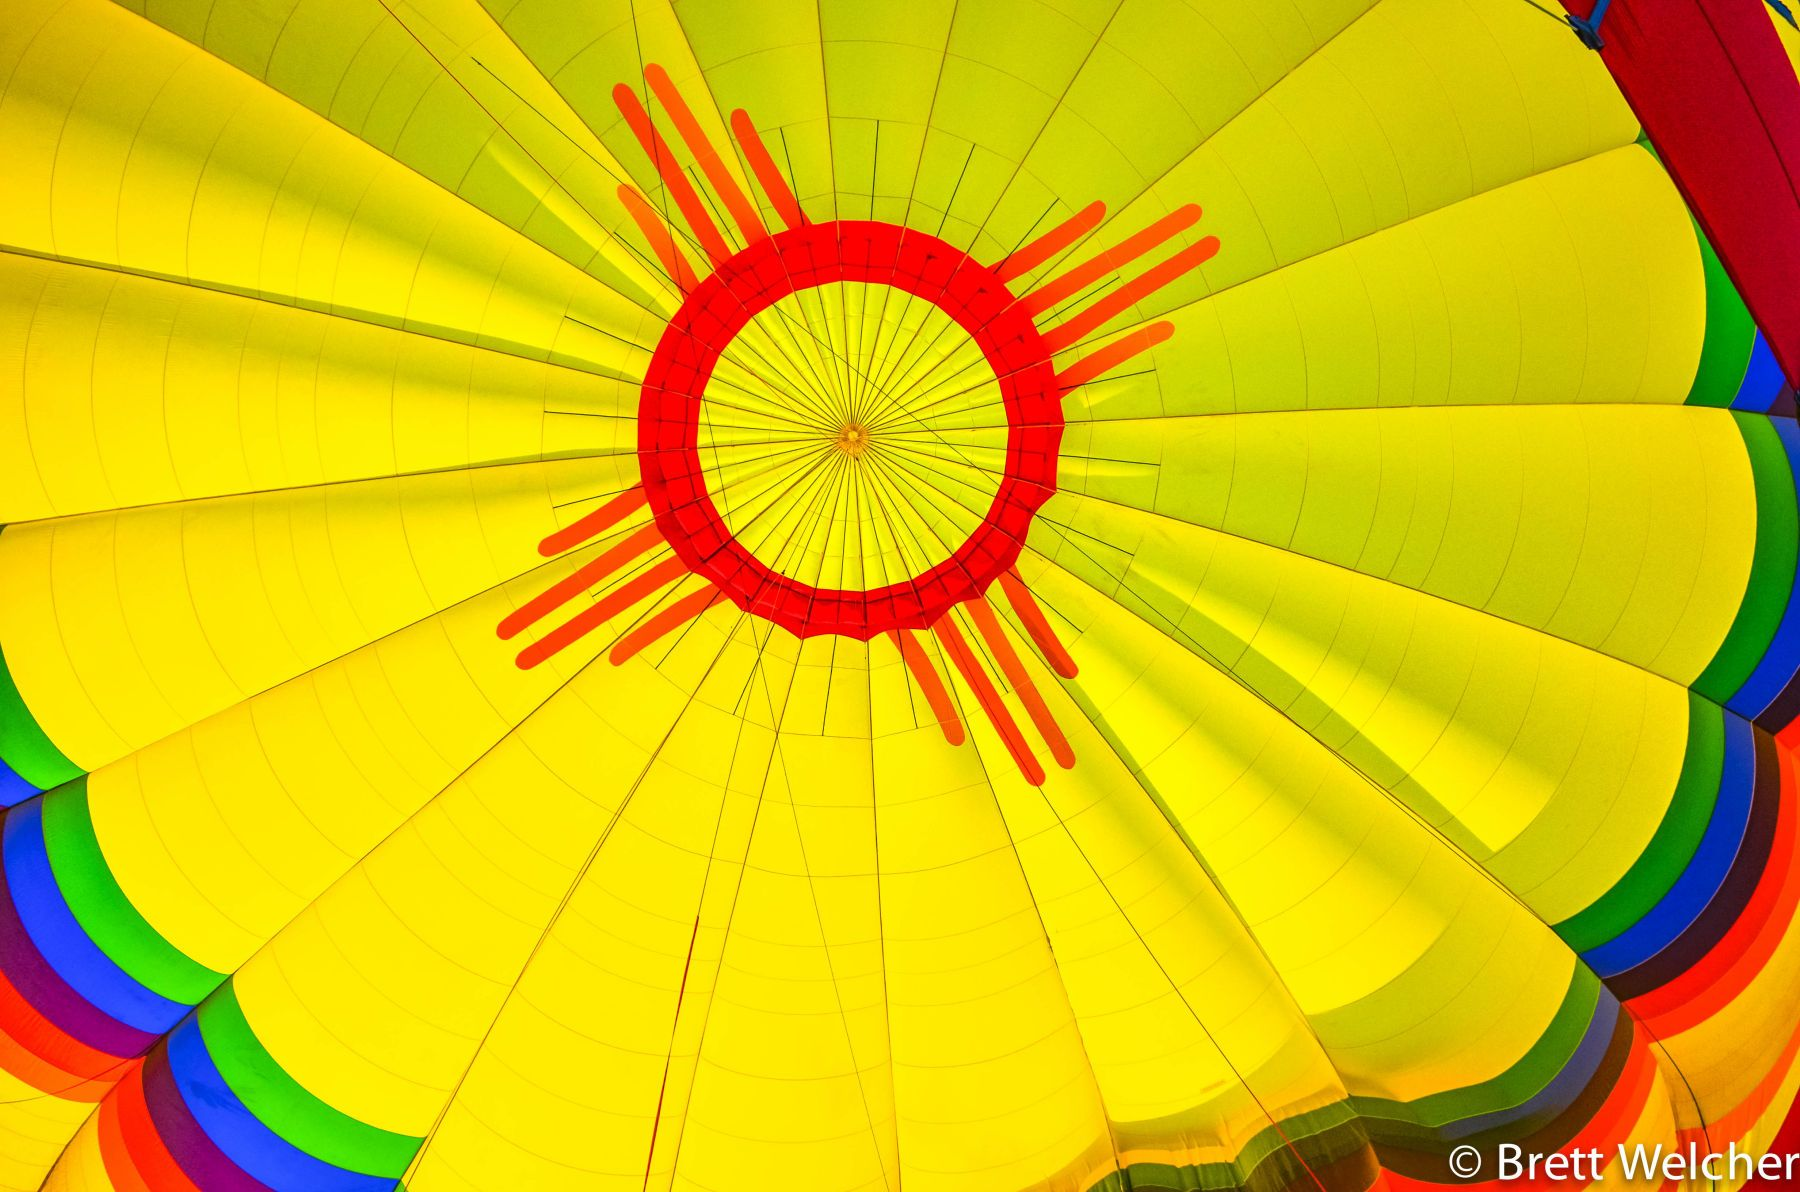 An image of the New Mexico state flag, reflected on top of a Rainbow Ryders hot air balloon. The colors of New Mexico's state flag are the red and yellow of old Spain. The simple, elegant center design is the ancient Zia sun symbol, which represents the un